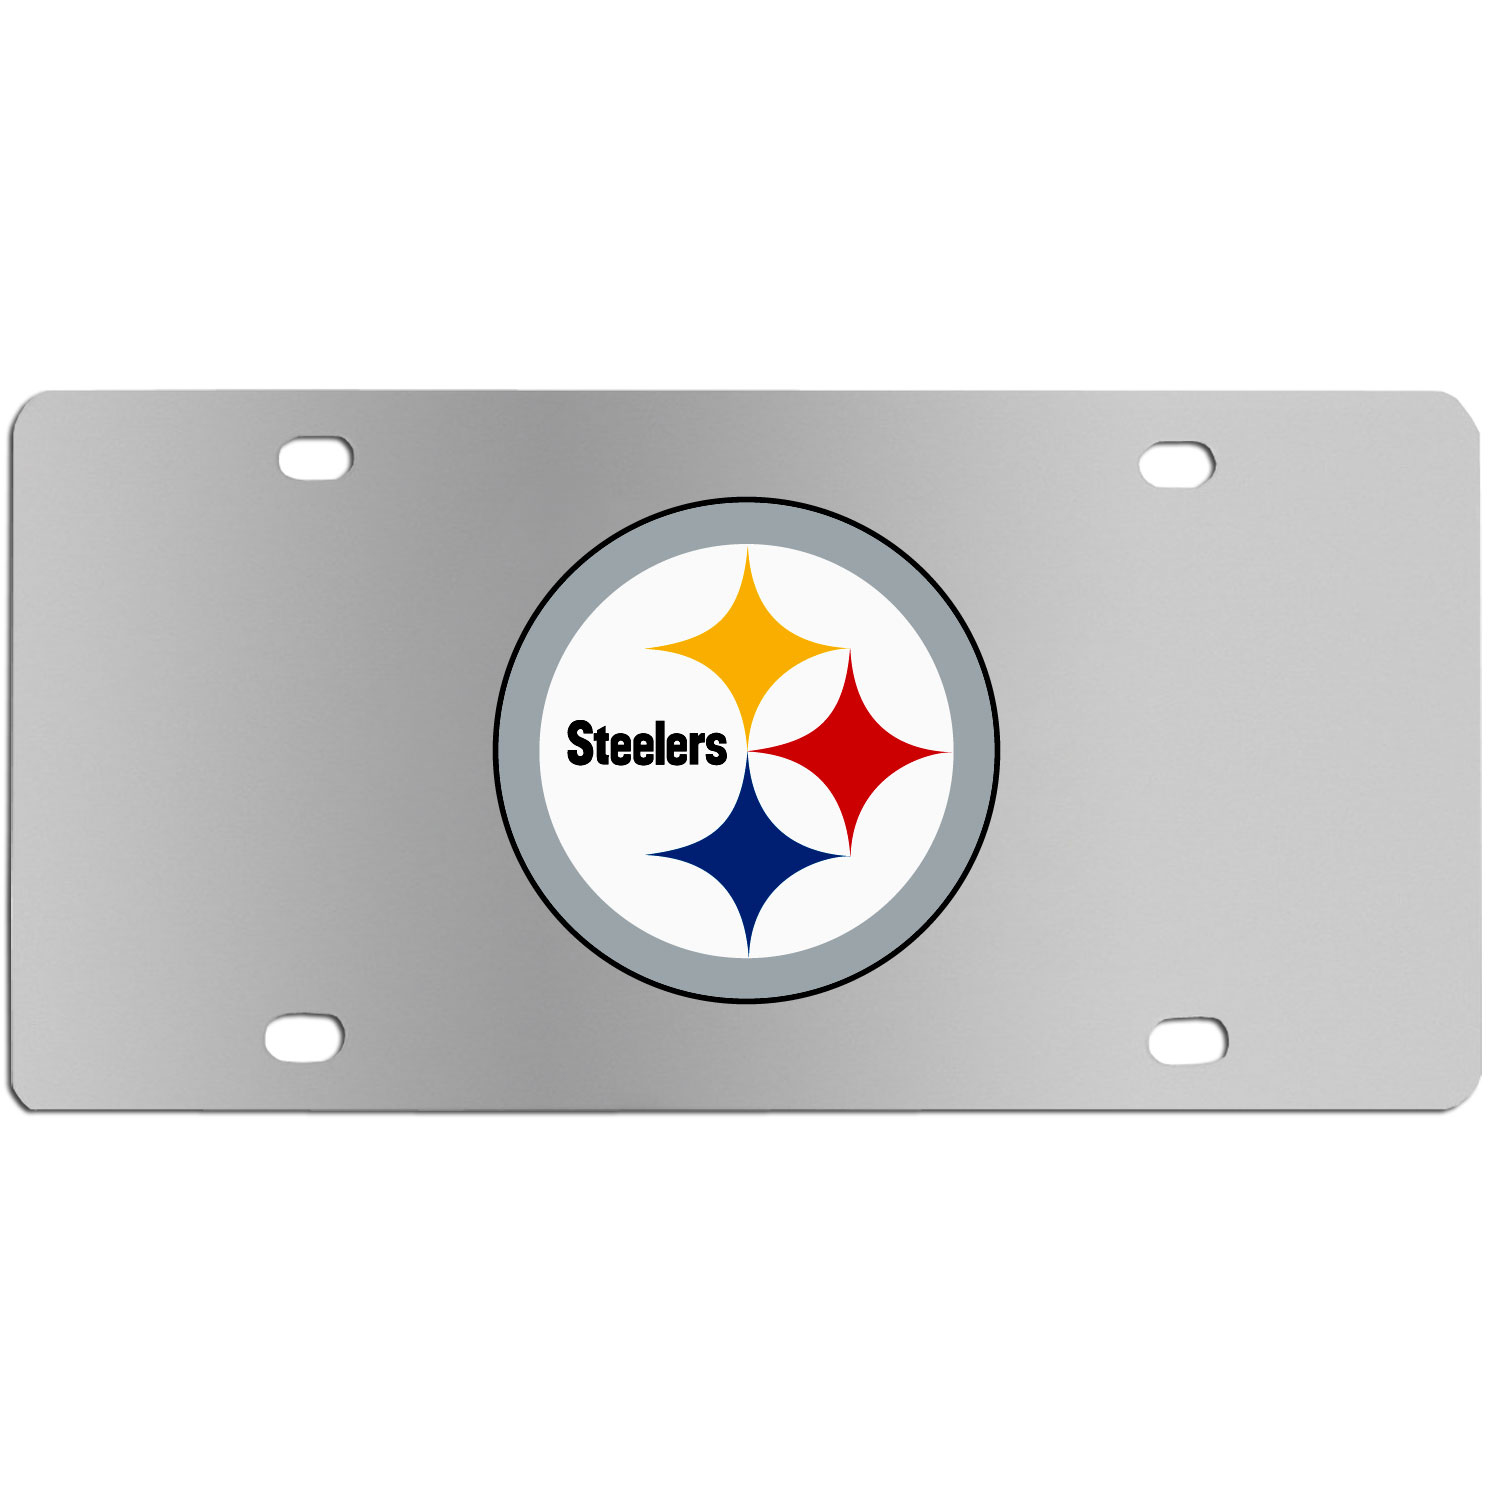 Pittsburgh Steelers Steel License Plate Wall Plaque - This high-quality stainless steel license plate features a detailed team logo on a the polished surface. The attractive plate is perfect for wall mounting in your home or office to become the perfect die-hard Pittsburgh Steelers fan decor.